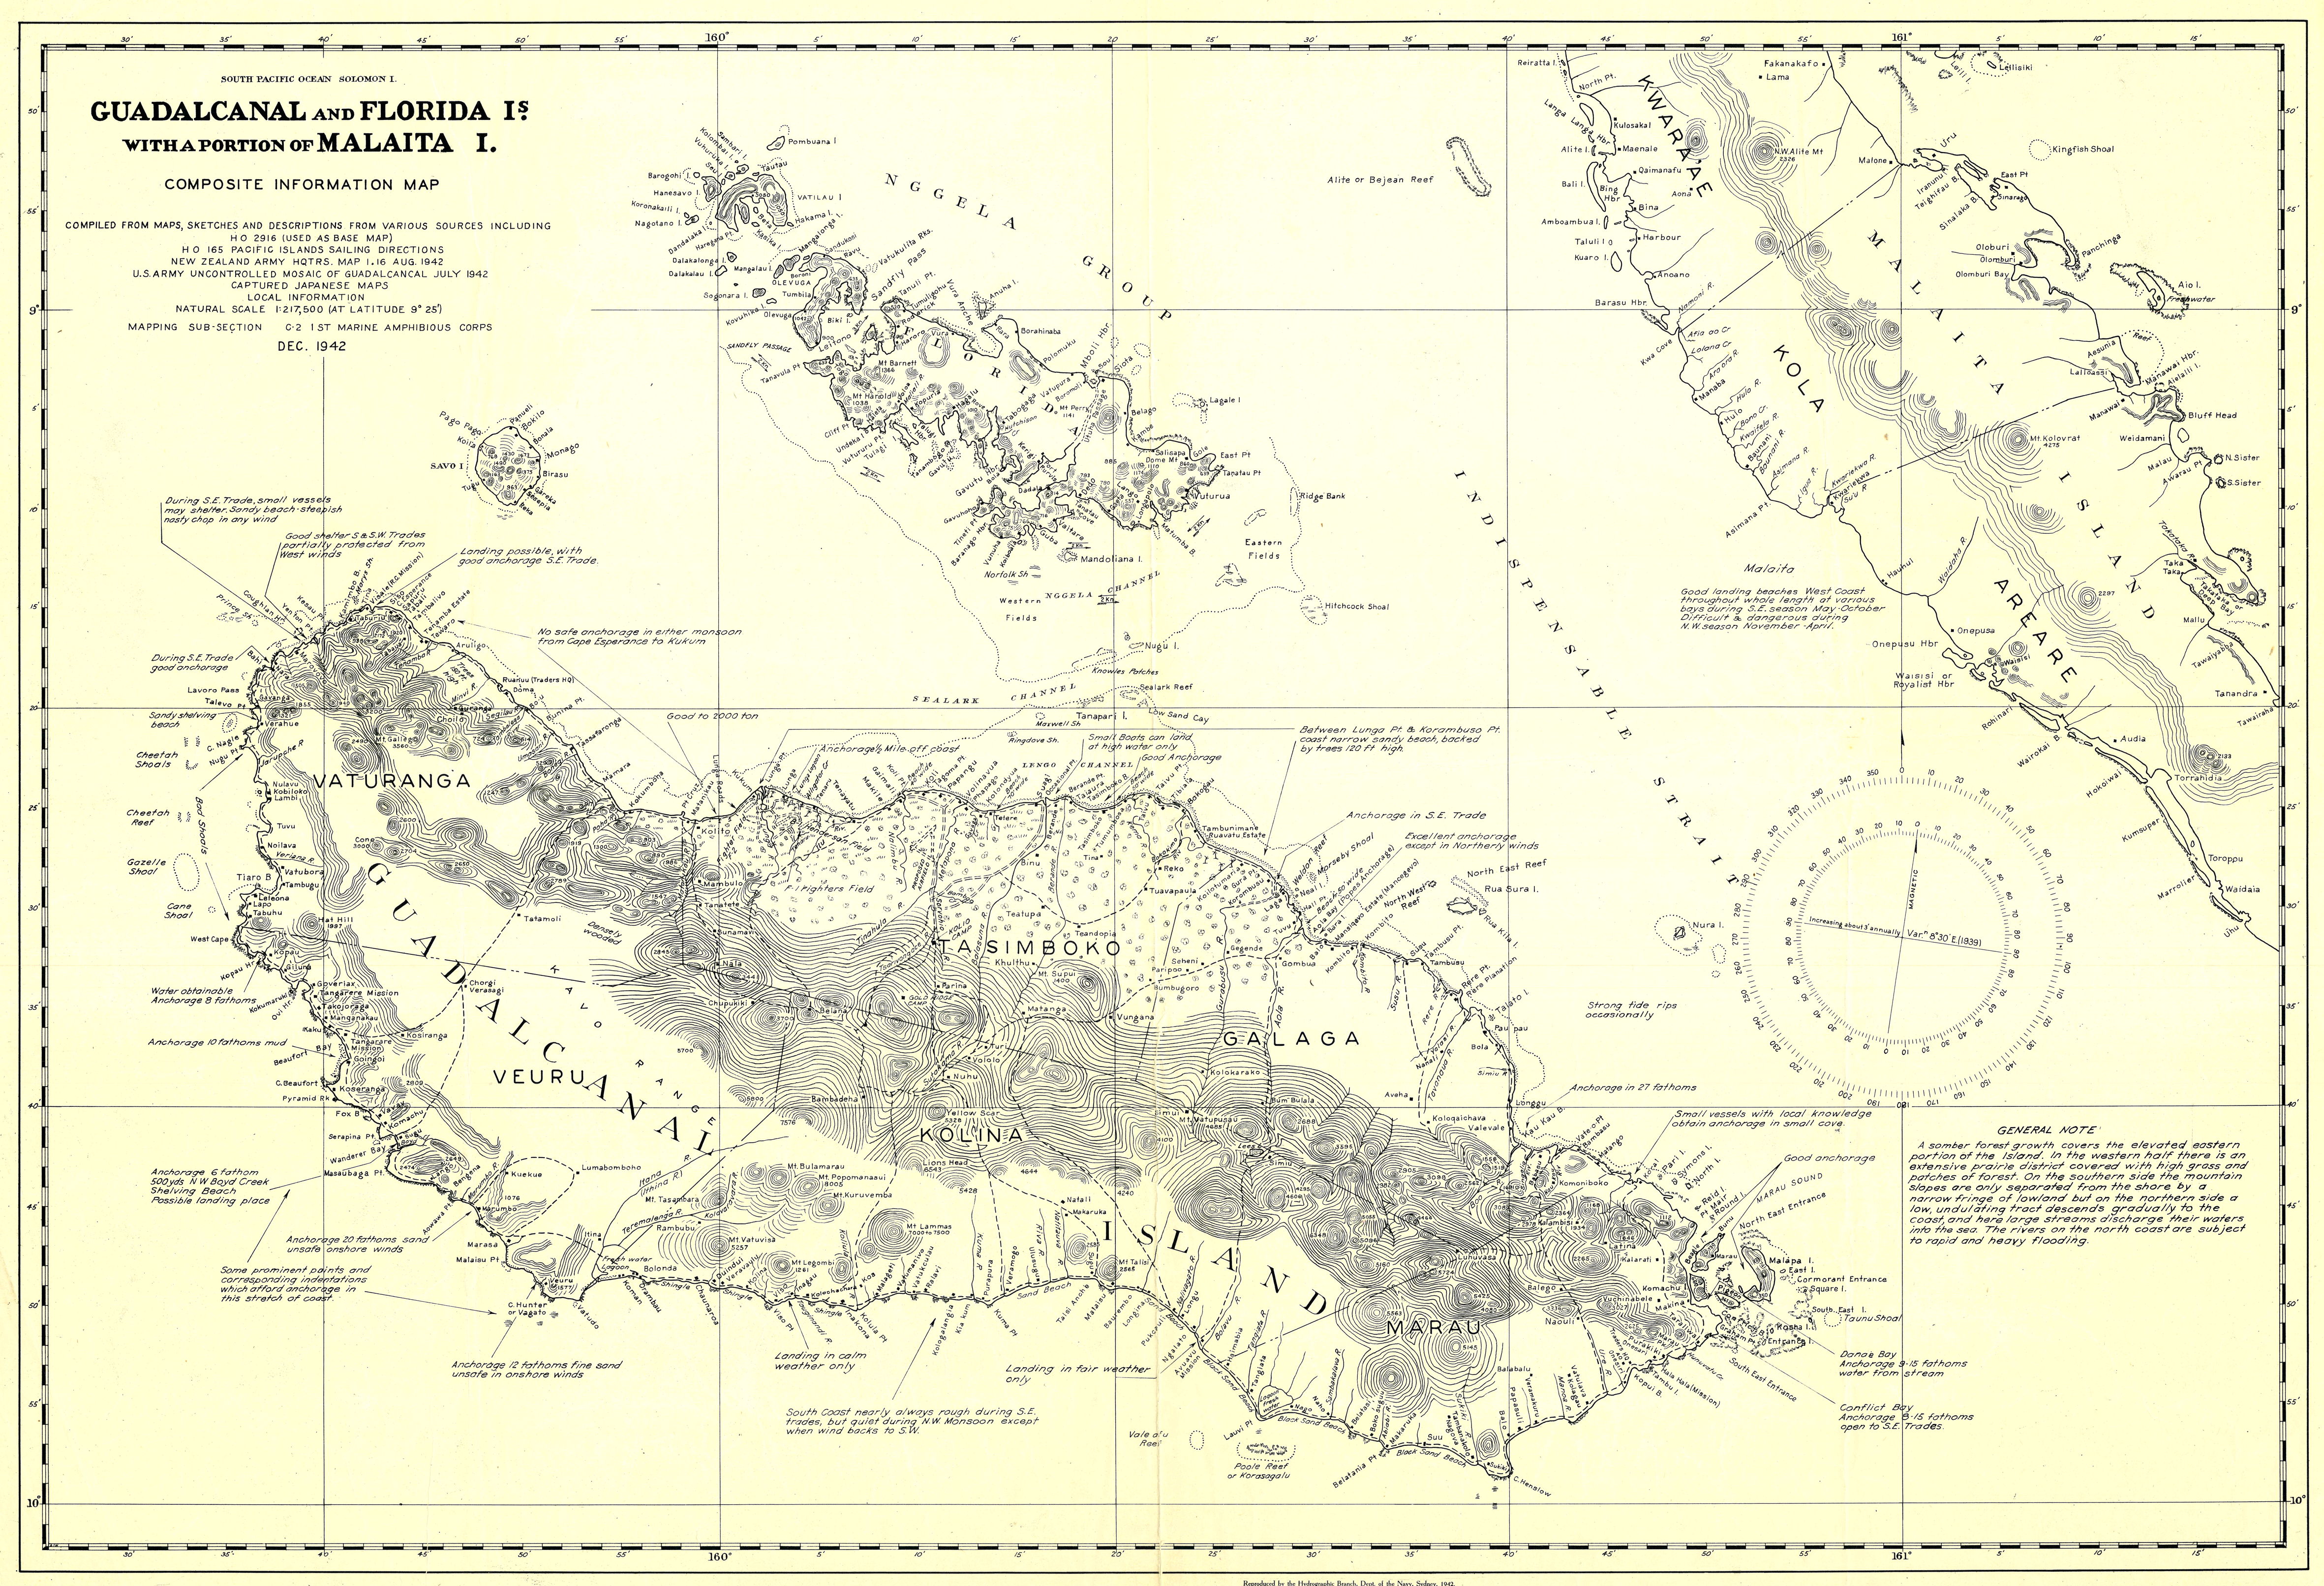 Florida Islands Map.File Map Of Guadalcanal And Florida Islands December 1942 Us